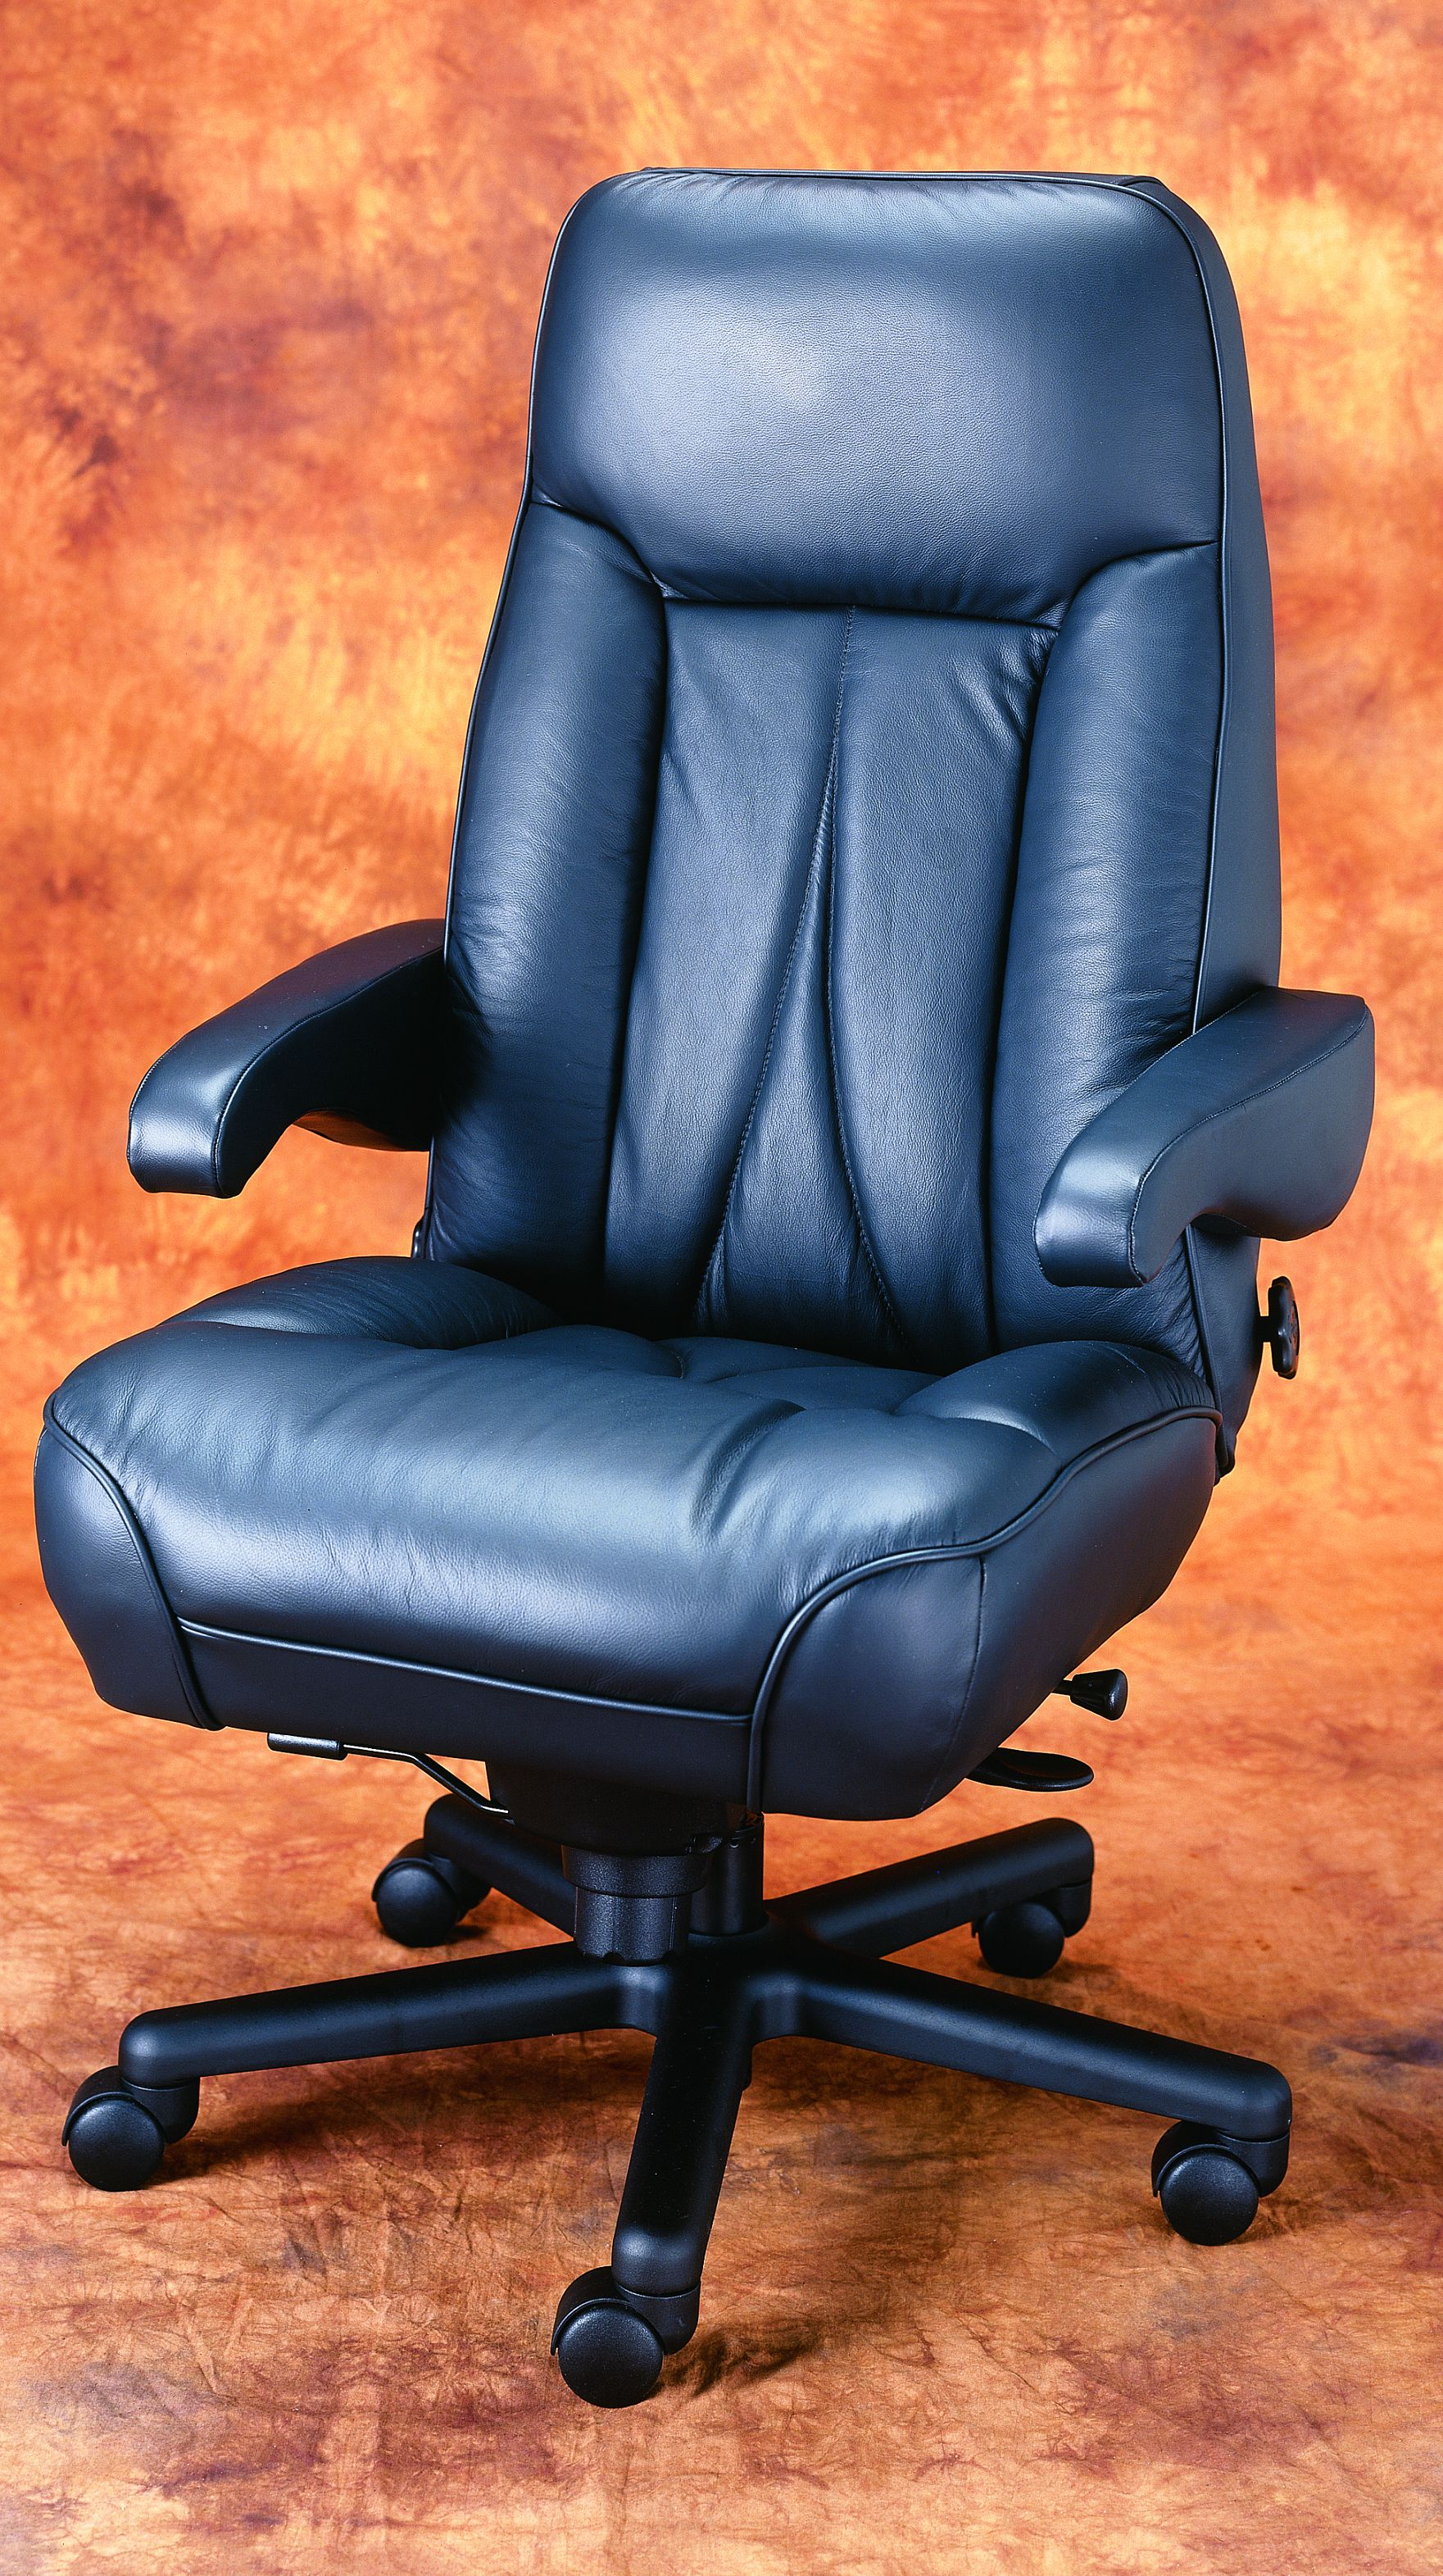 office furniture mall big tall chairs 350 to 750 lb capacity big office chairs big tall